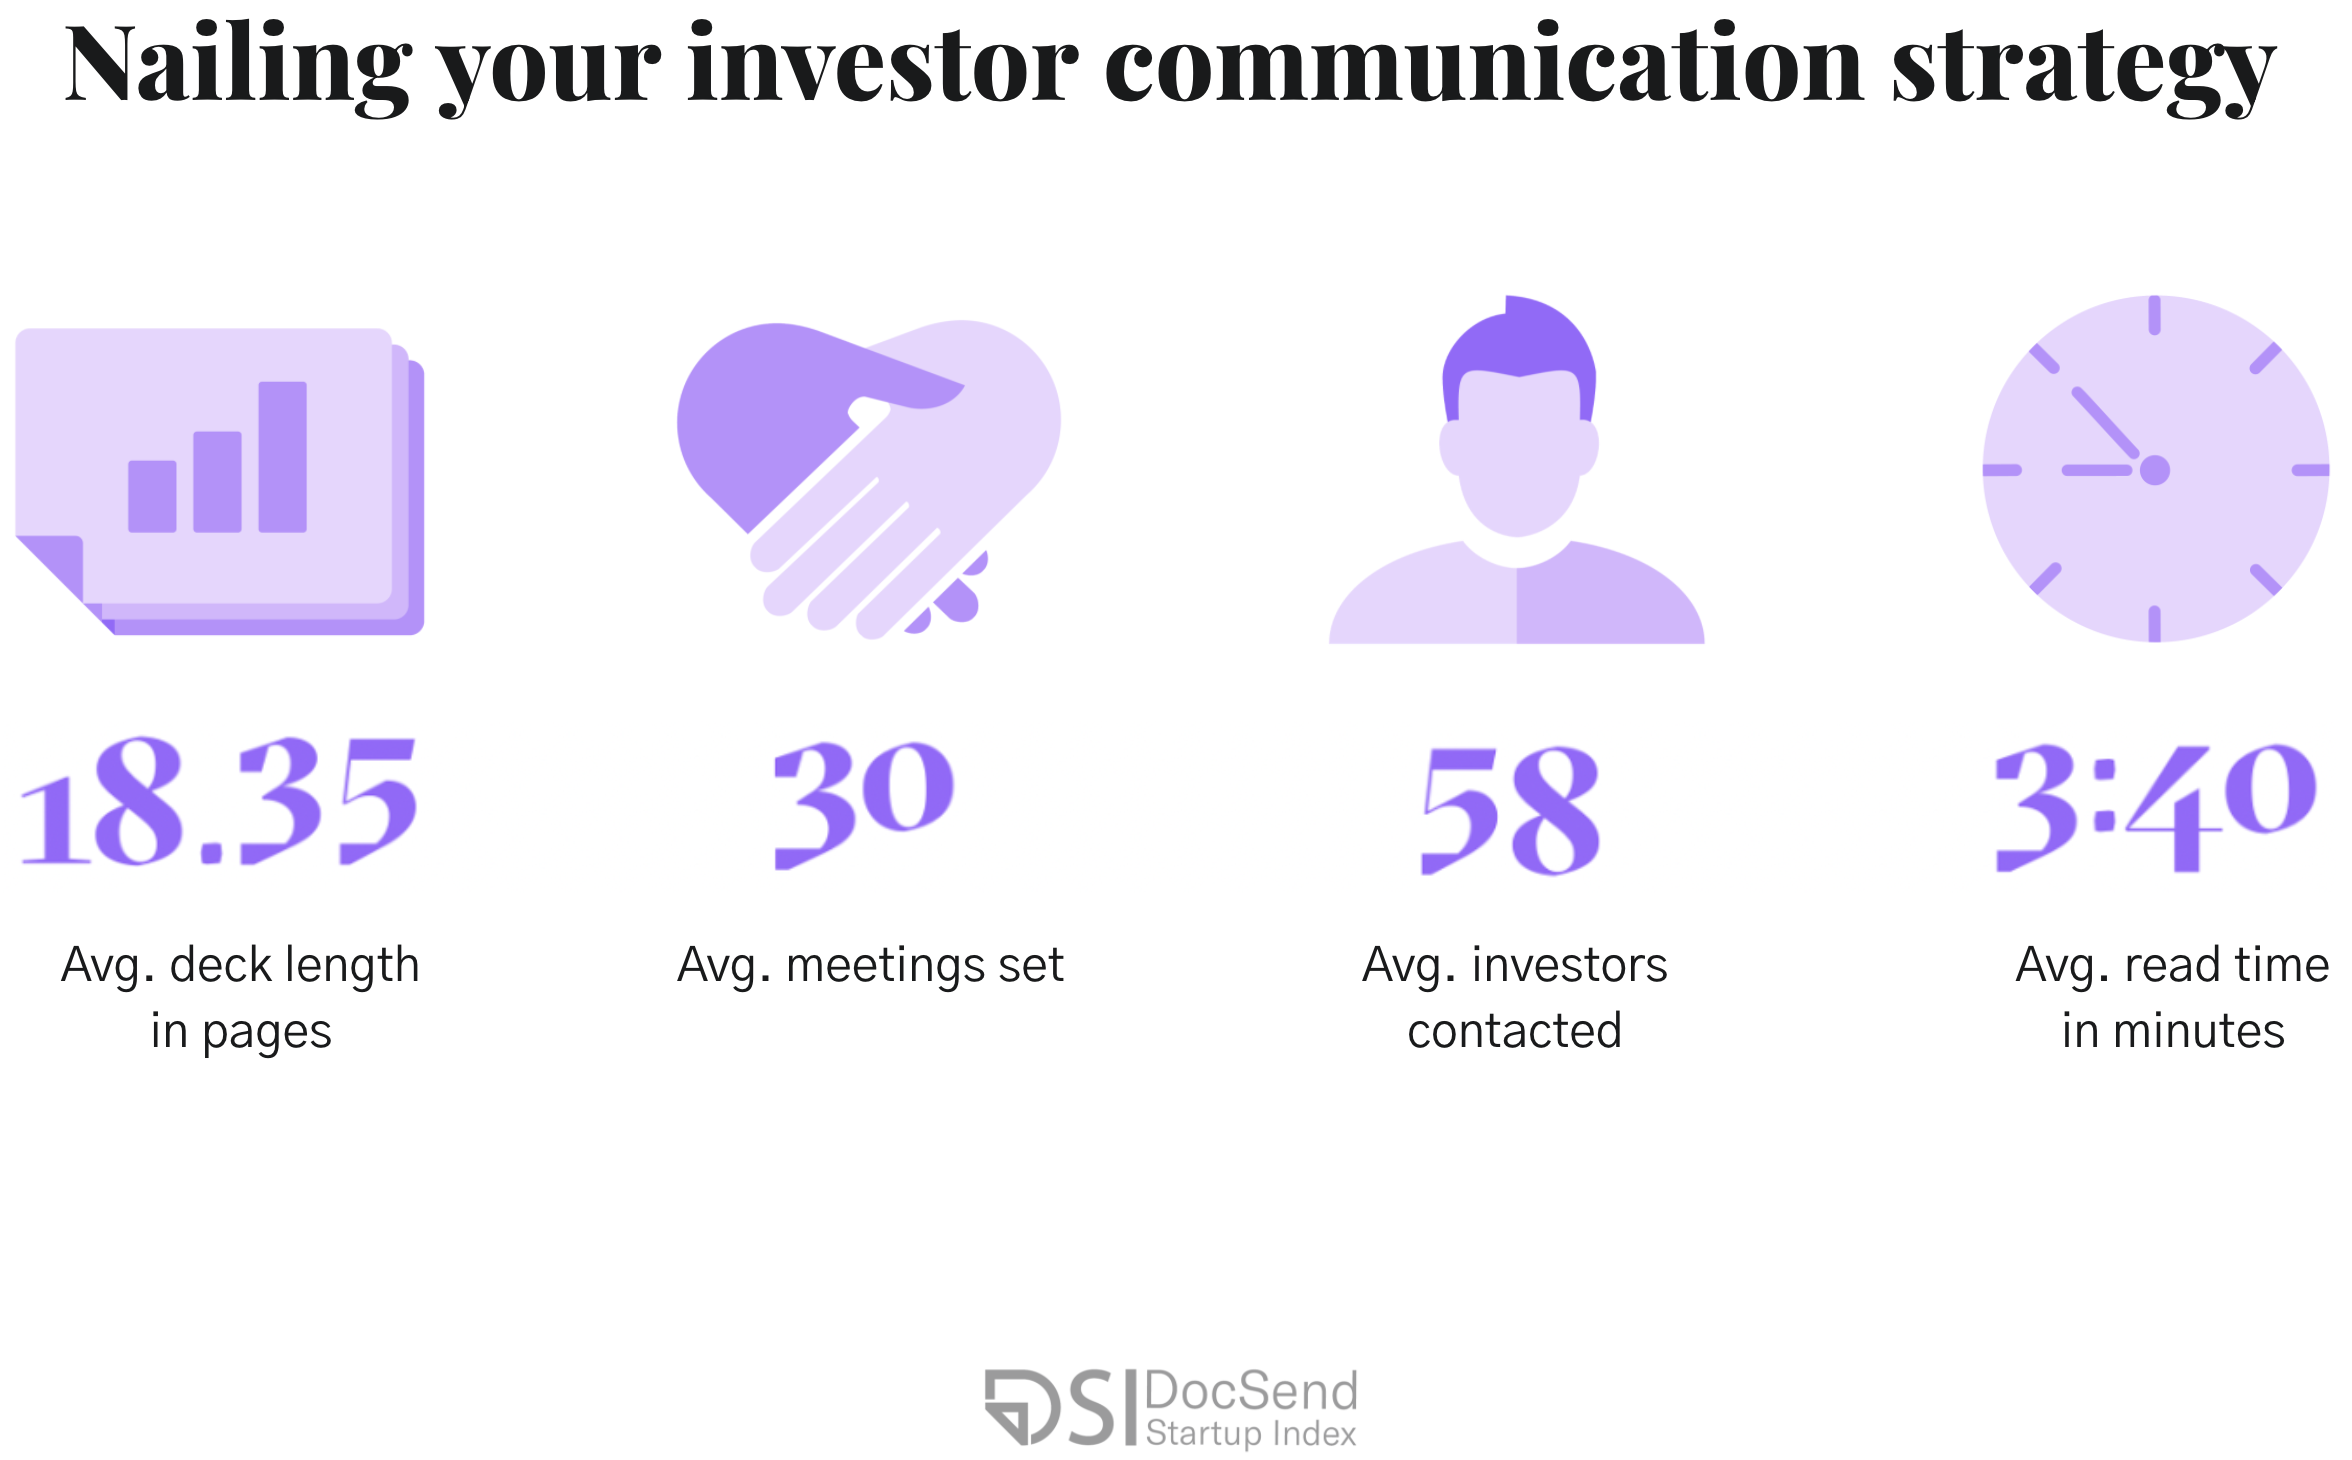 Nailing your investor communication pre-seed investor strategy